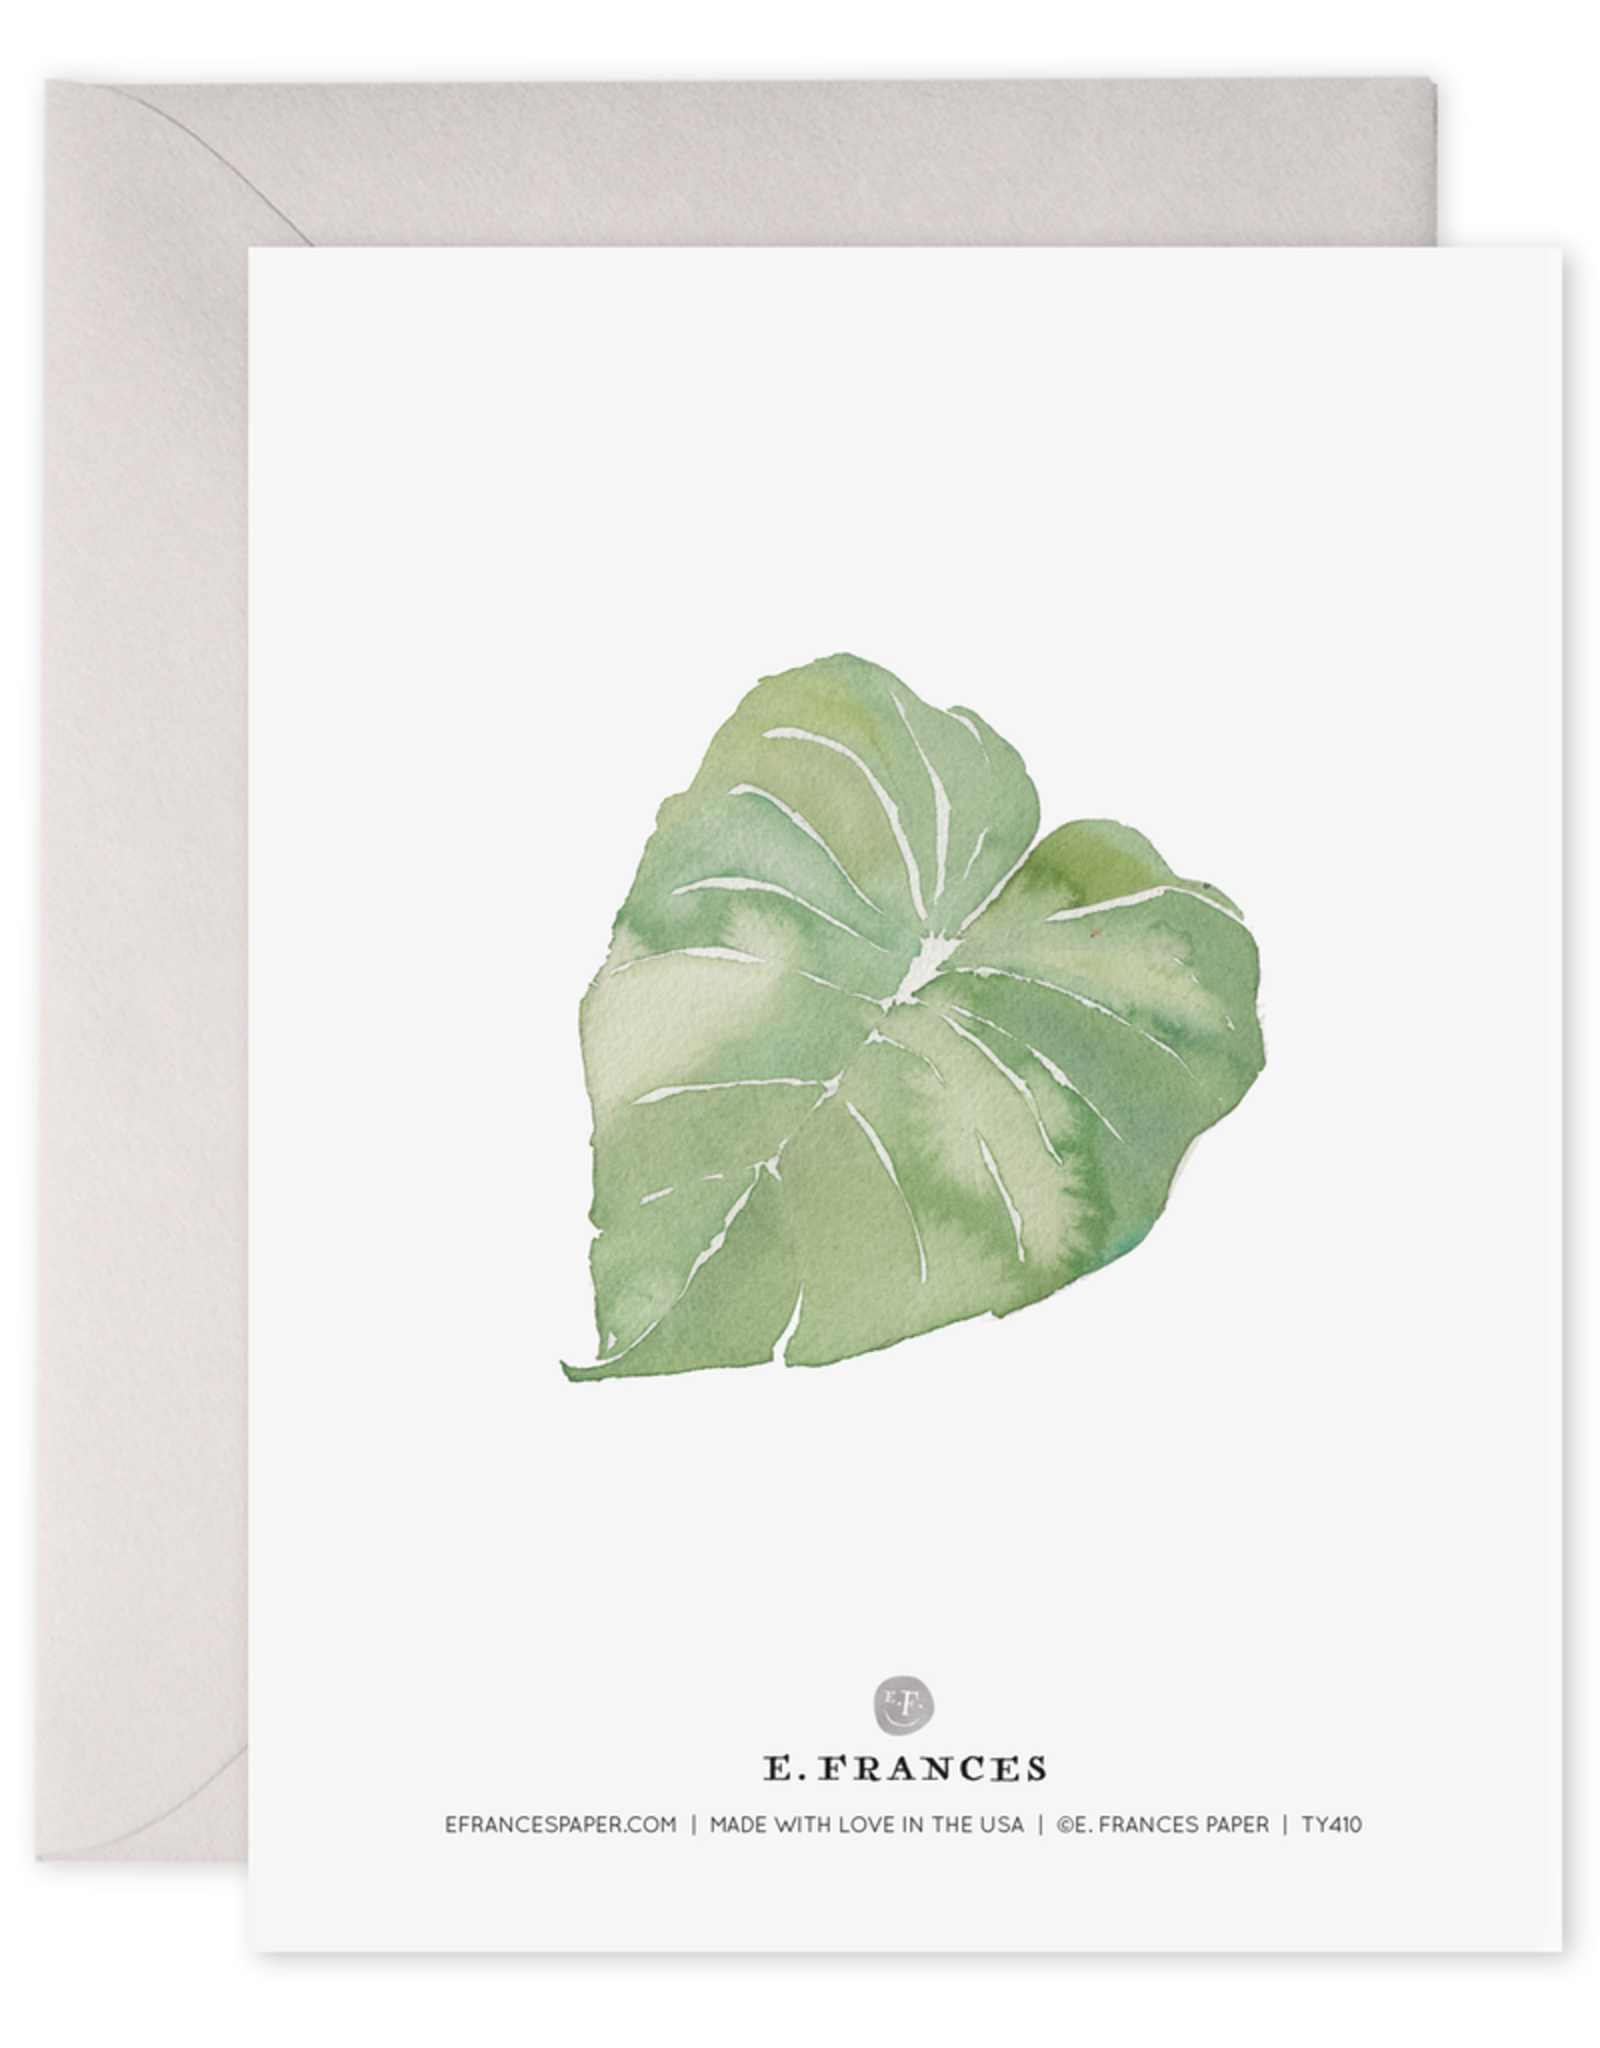 E. Frances Paper Thank You Card - Leaves